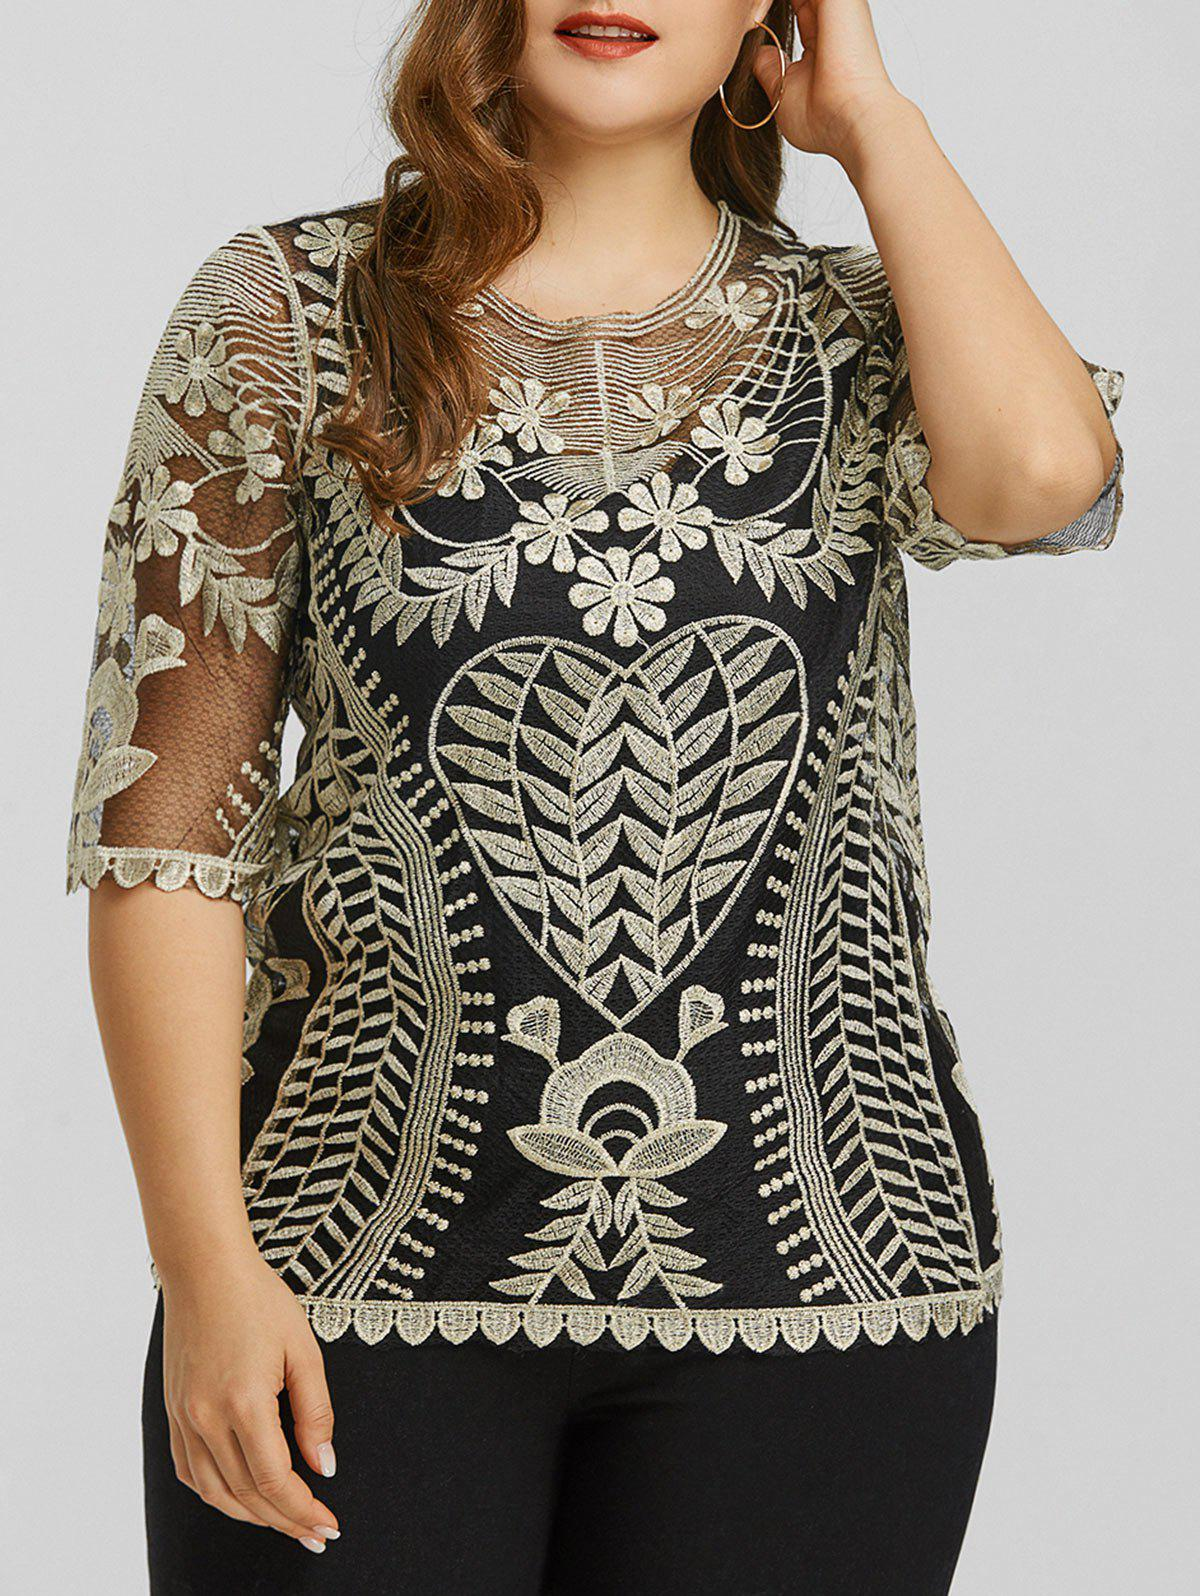 Plus Size Scalloped Sheer Lace Top - GOLDEN ONE SIZE